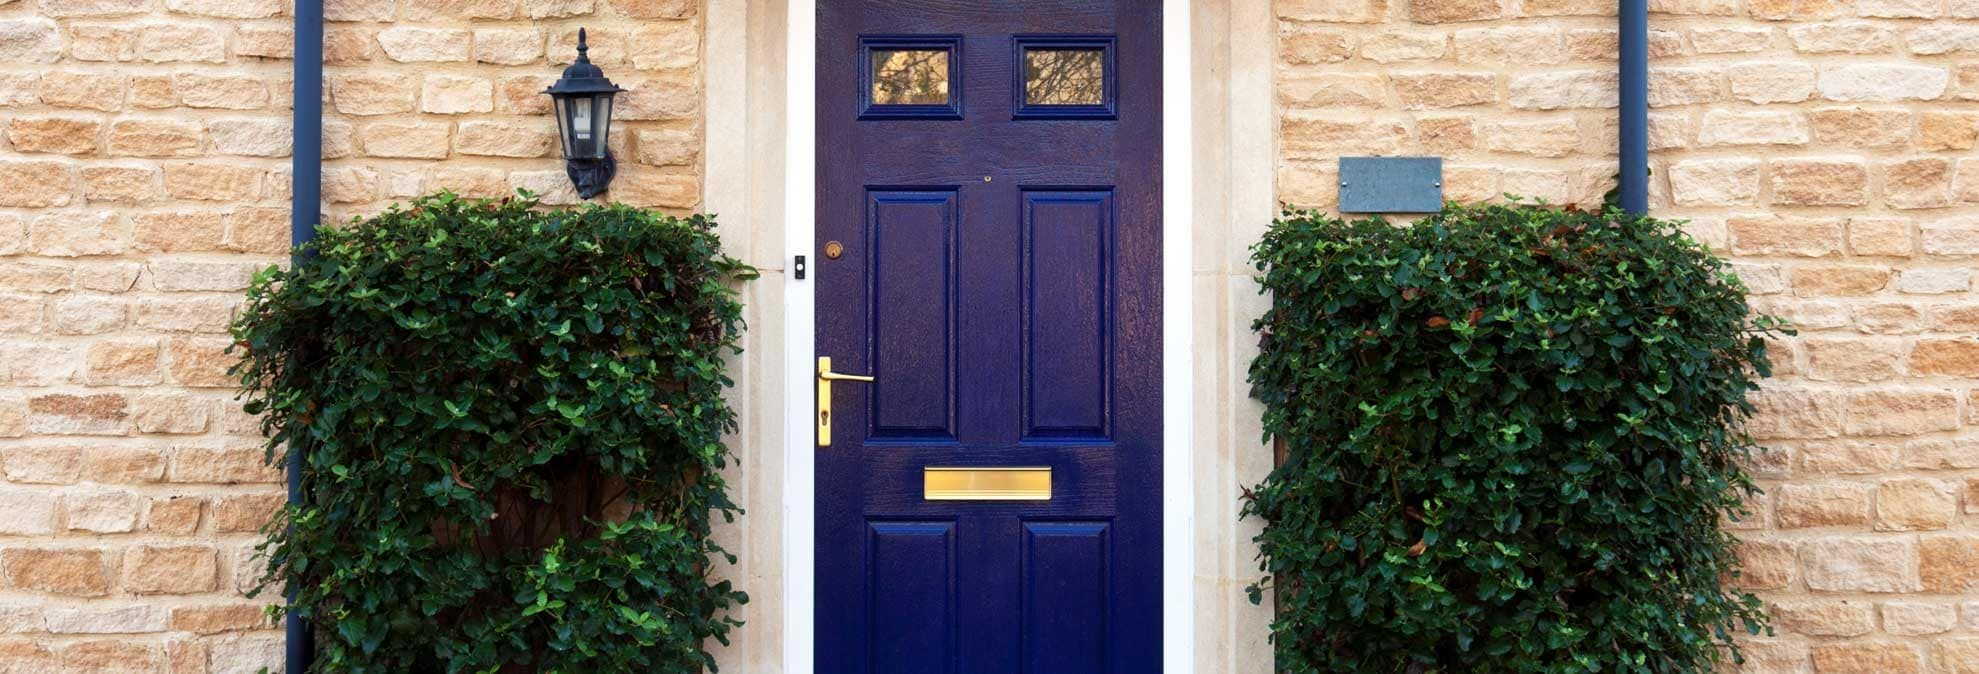 Best Exterior Paint for Doors and Trim | Consumer reports, Exterior on money reports, professional reports, online reports, investor reports, construction reports, energy reports,